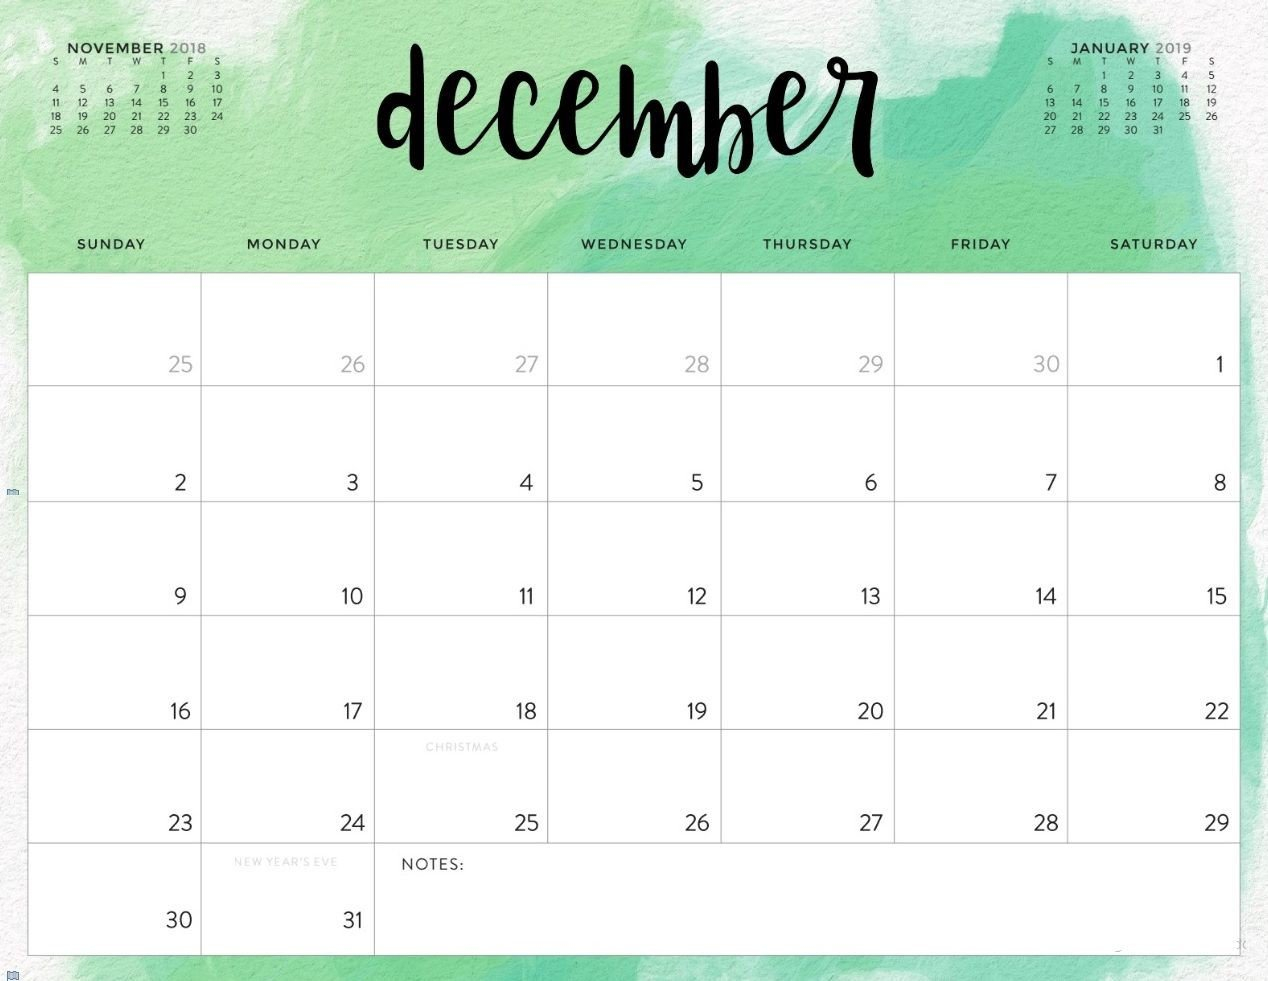 Custom Calendar For Business - Marry Steven - Medium Calendar That I Can Edit